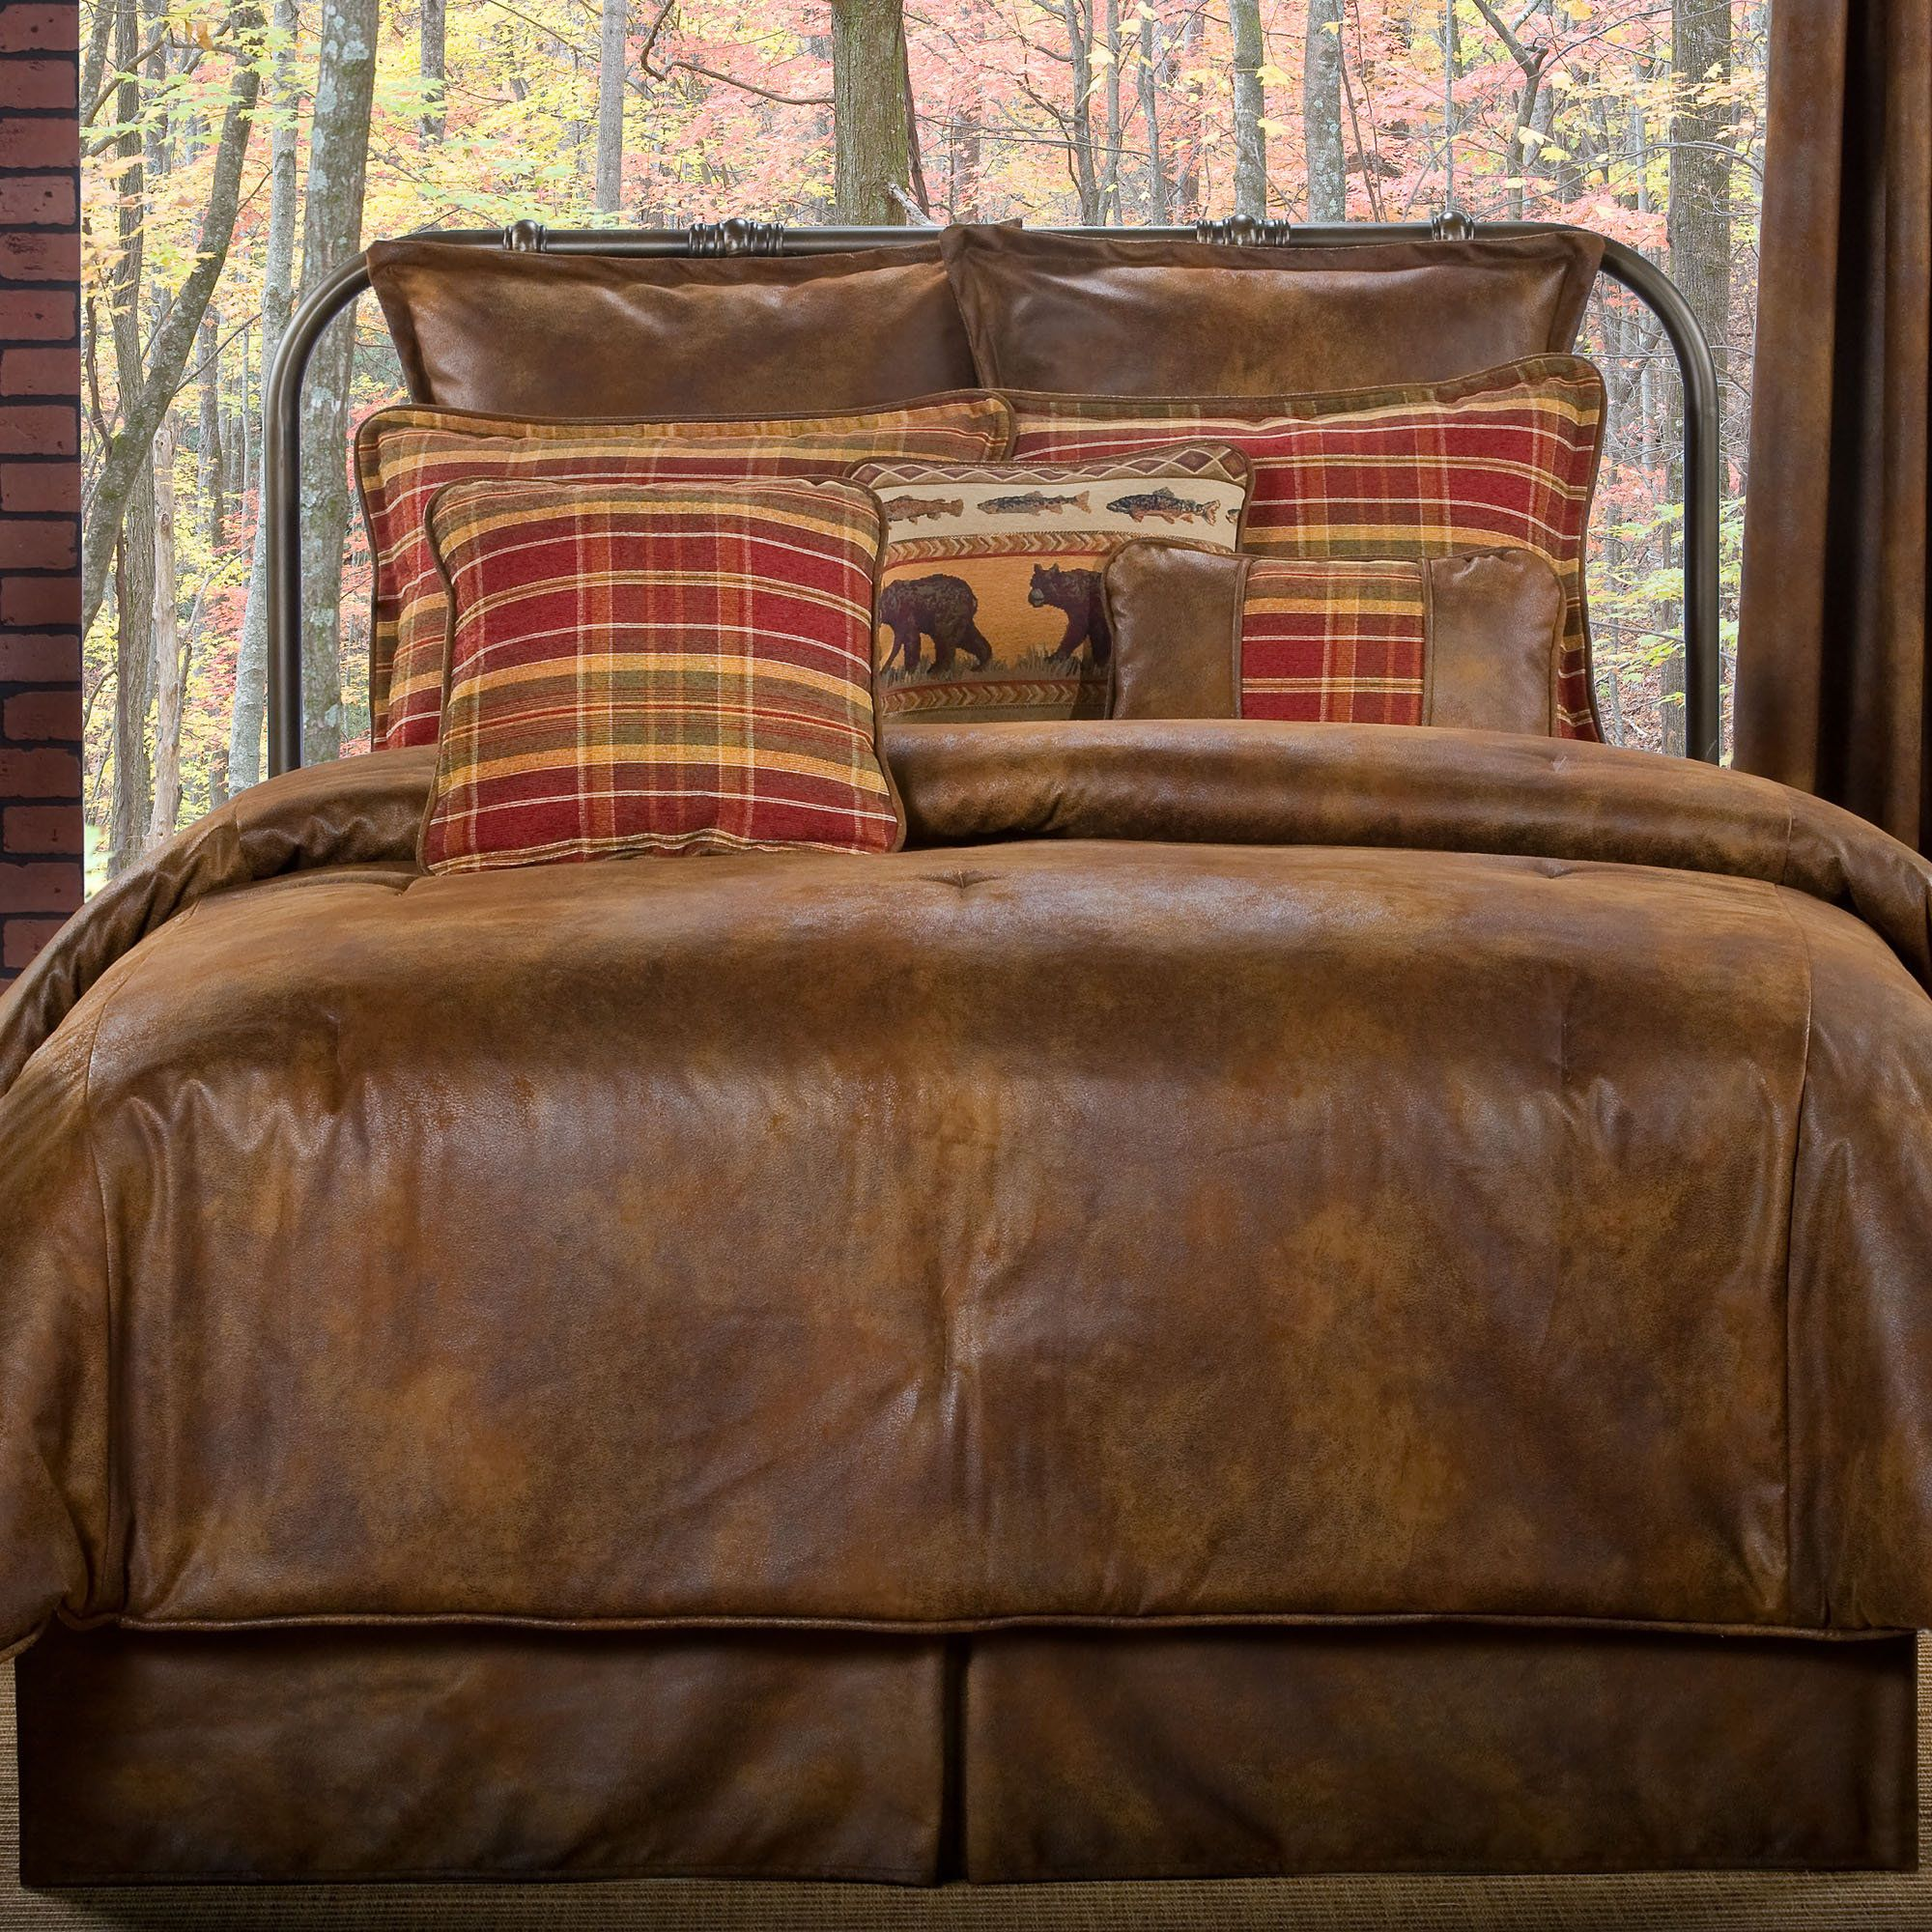 multi warm donna duvet by bedding doe p valley sharp quilt deer rustic covers